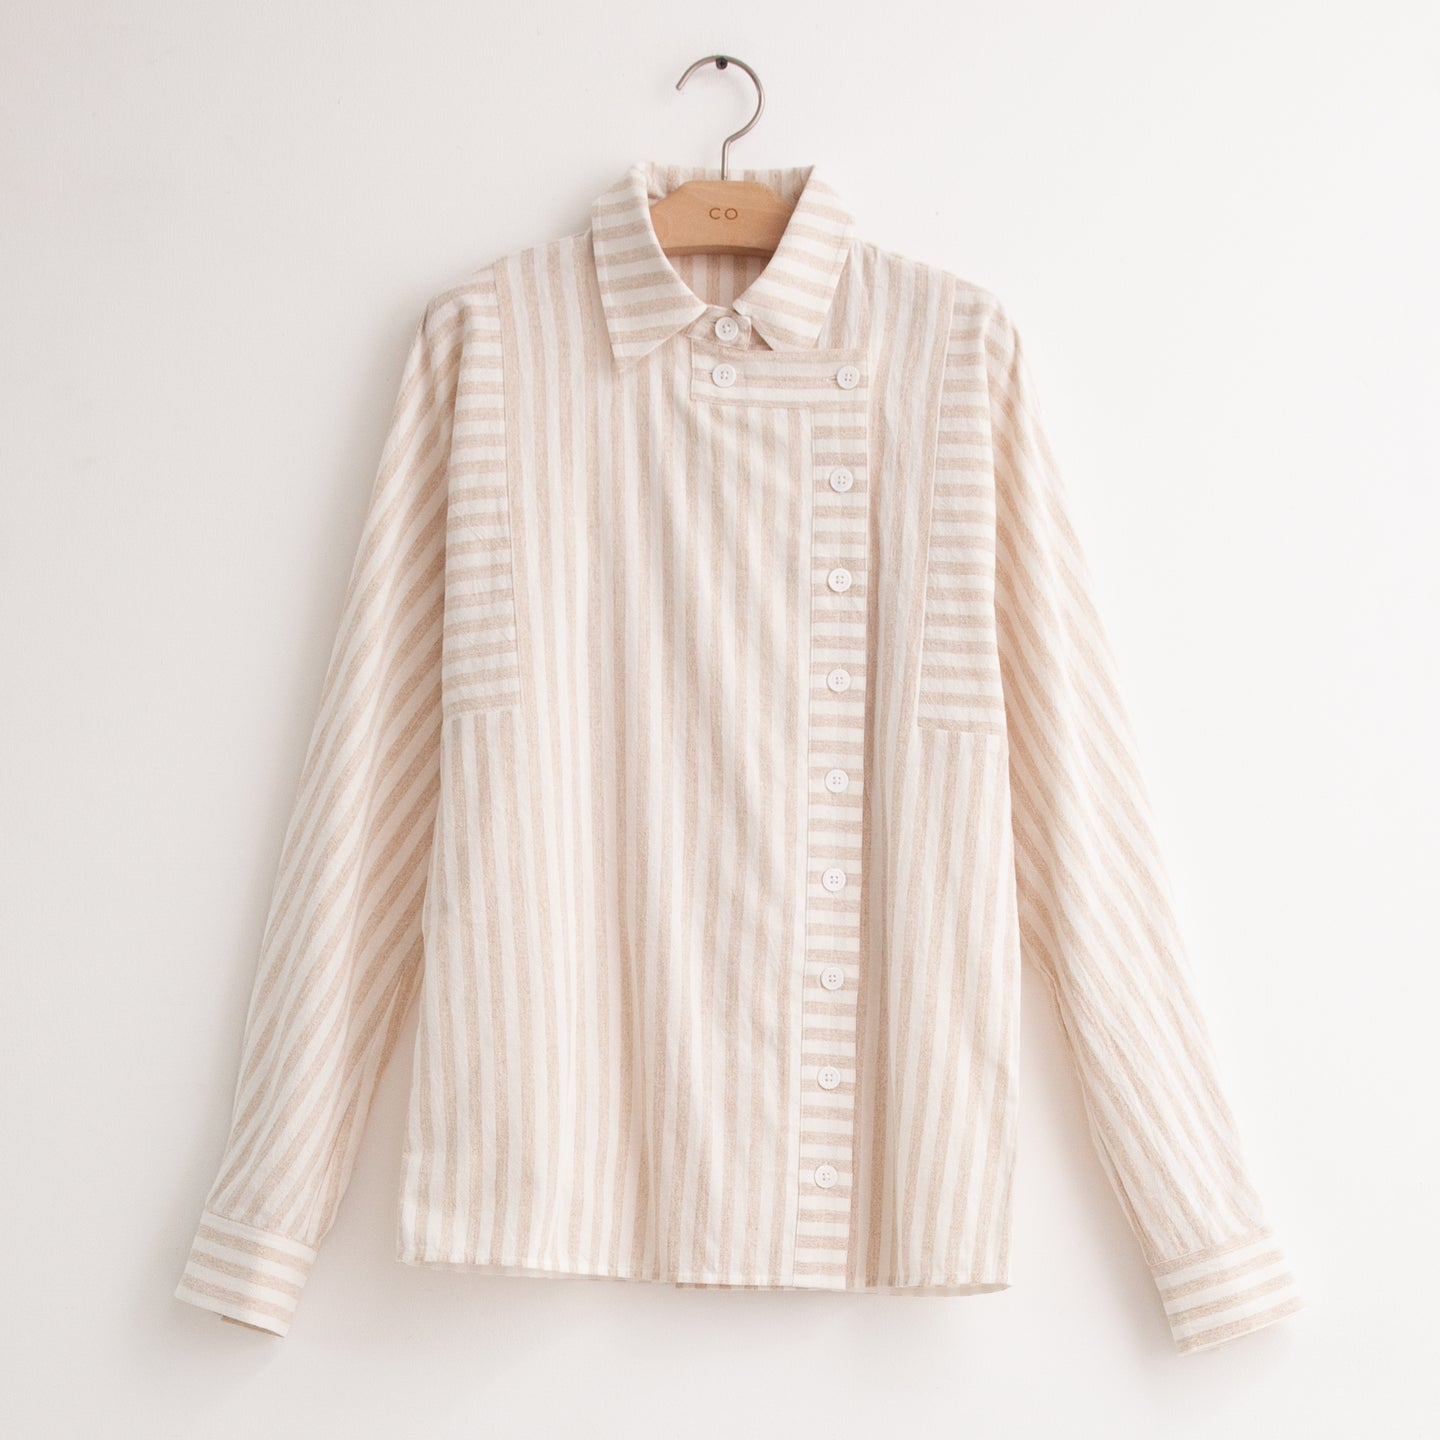 Long sleeve blouse with asymmetrical buttonfront placket in taupe striped cotton linen - CO